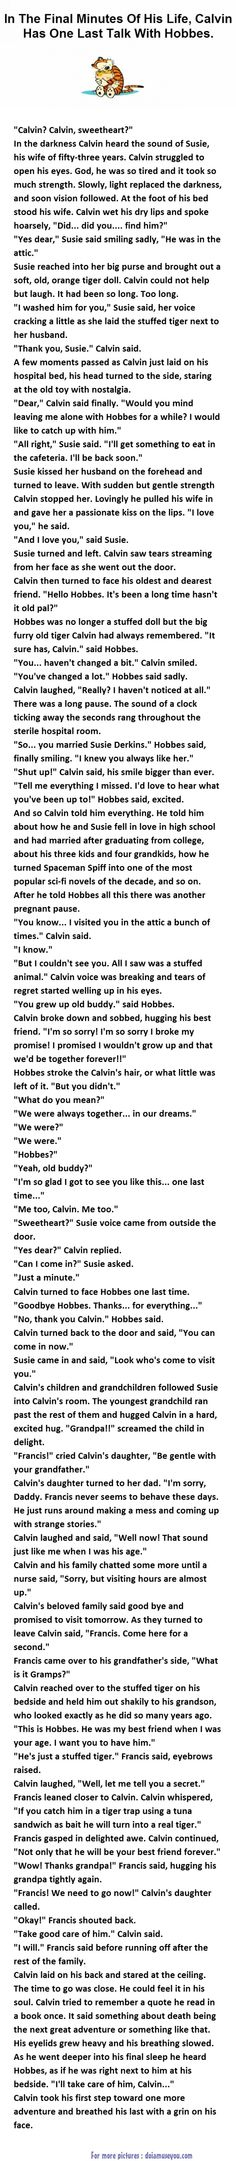 In the final minutes of his life,Calvin has one last talk with Hobbes...IN TEARS